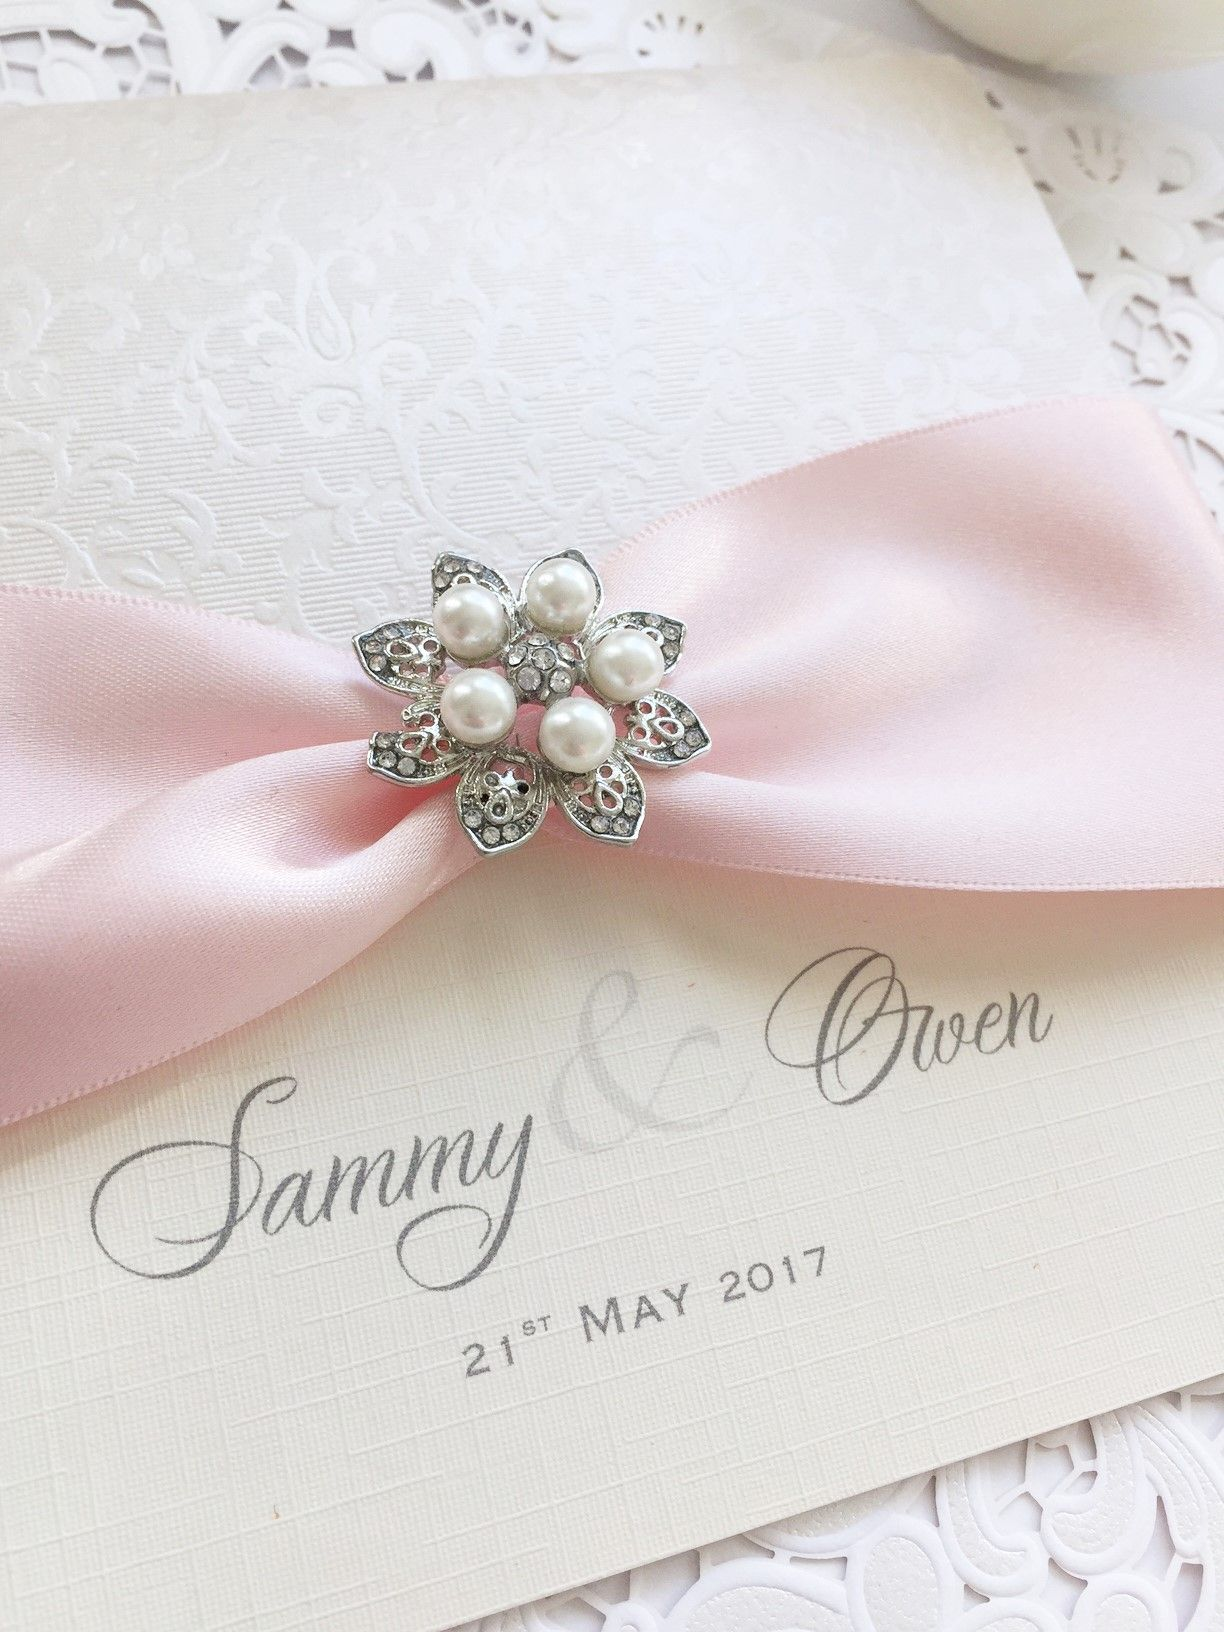 Pocket style luxury invitation with pink ribbon and pearl brooch